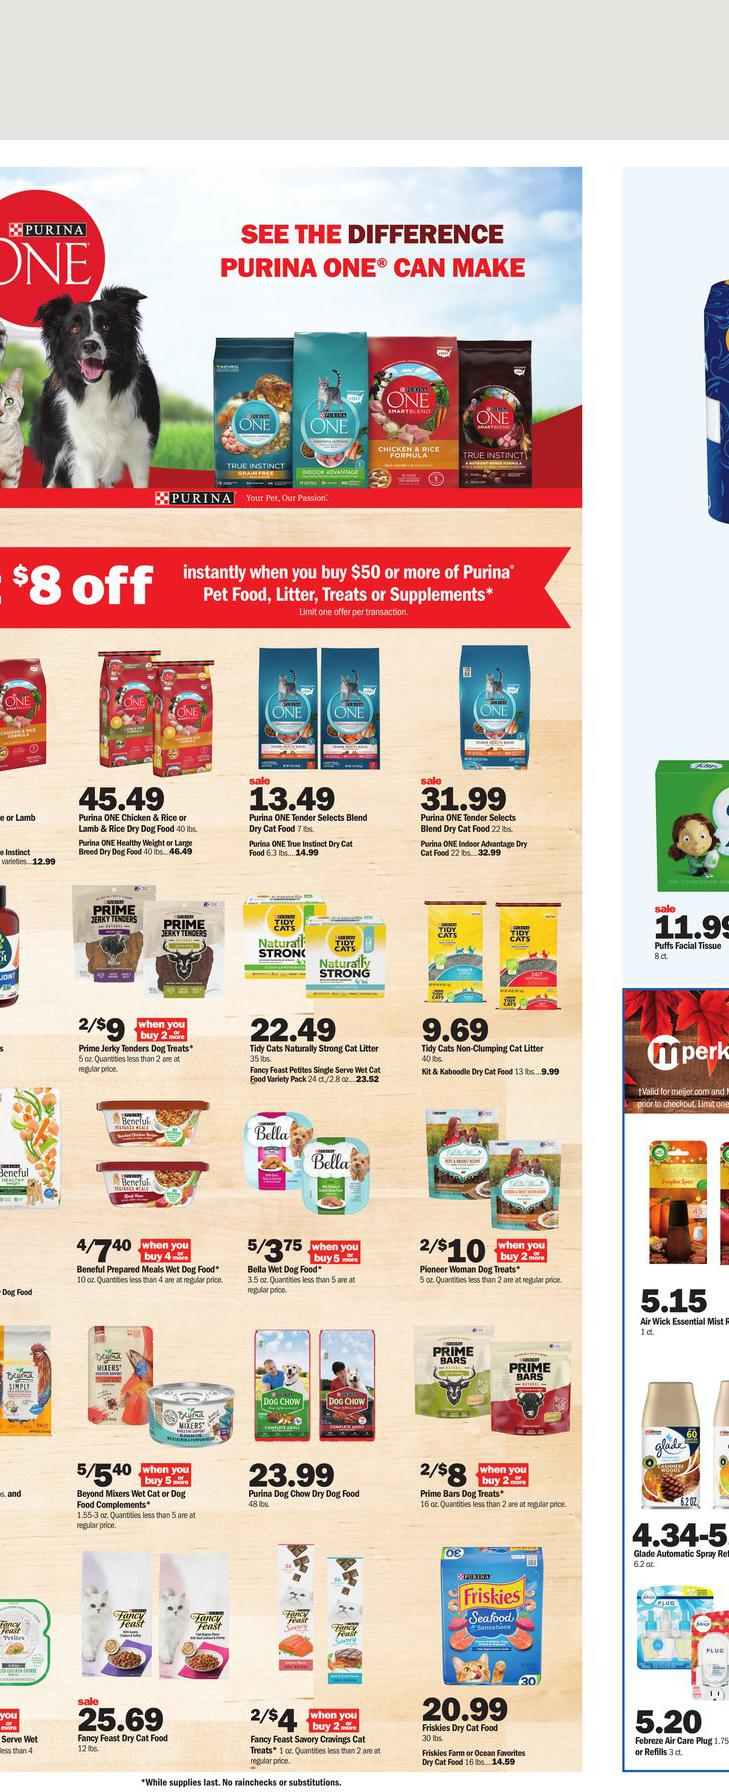 12.09.2021 Meijer ad 19. page